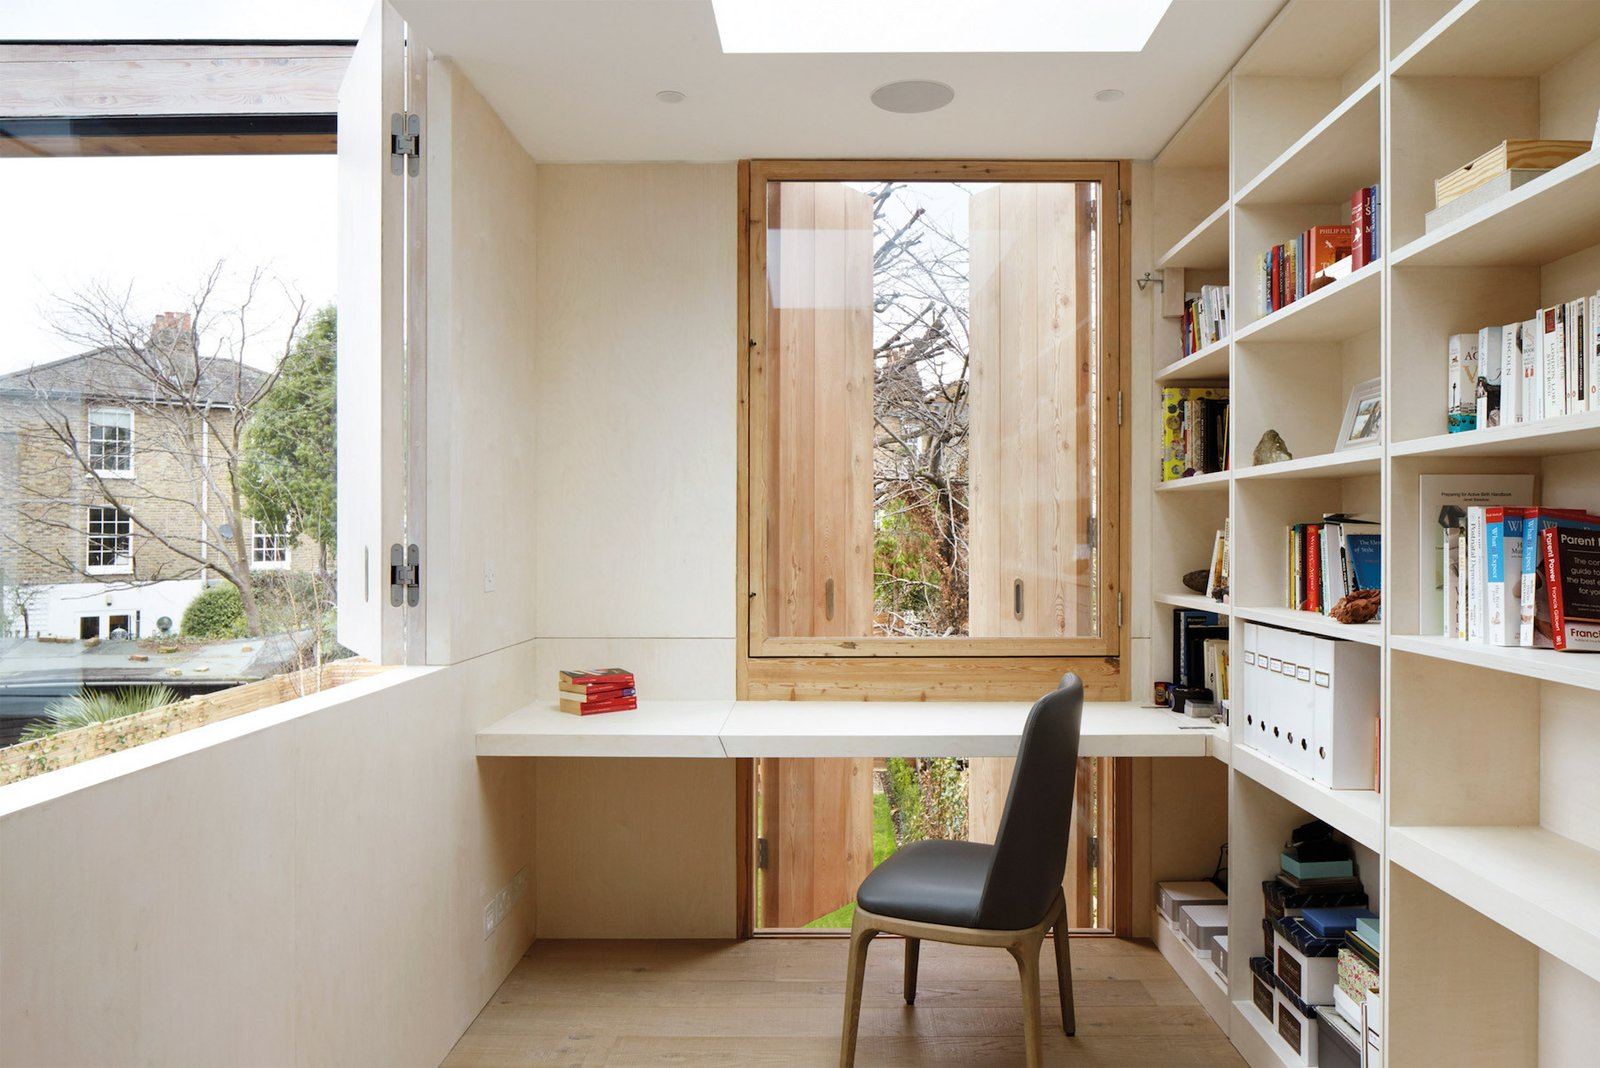 Photo 5 of 9 in De Beauvoir House by Leibal